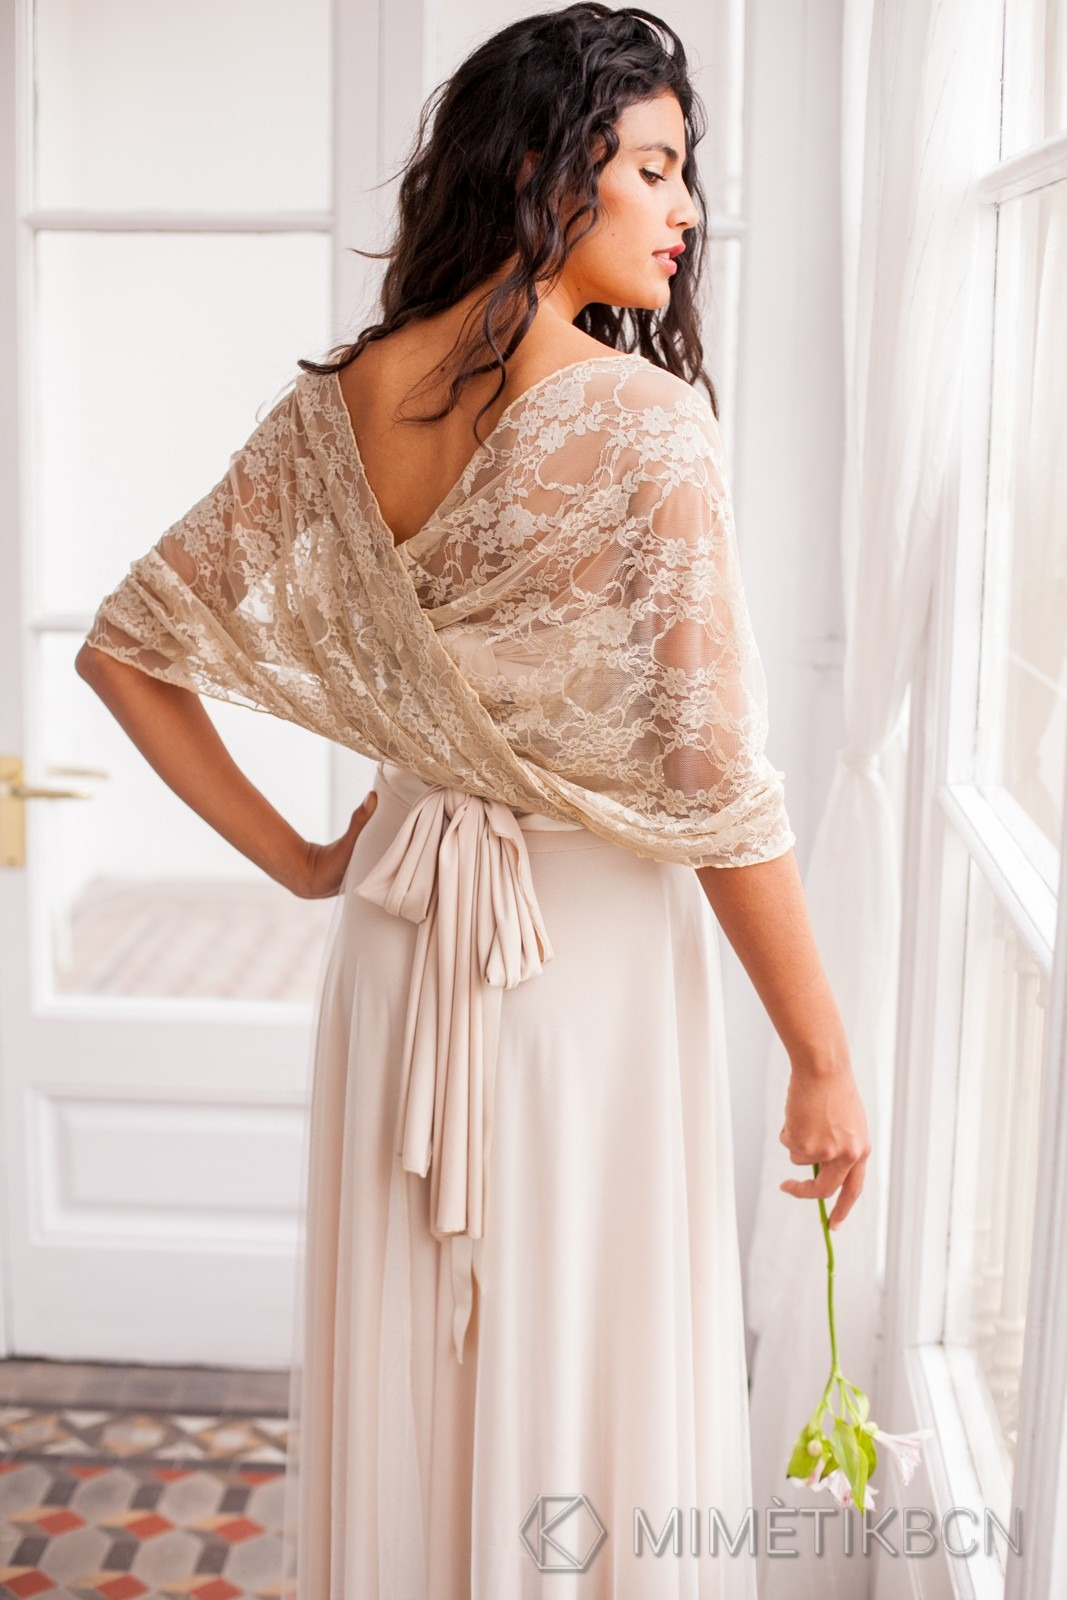 Golden lace shawl for brides in a hurry